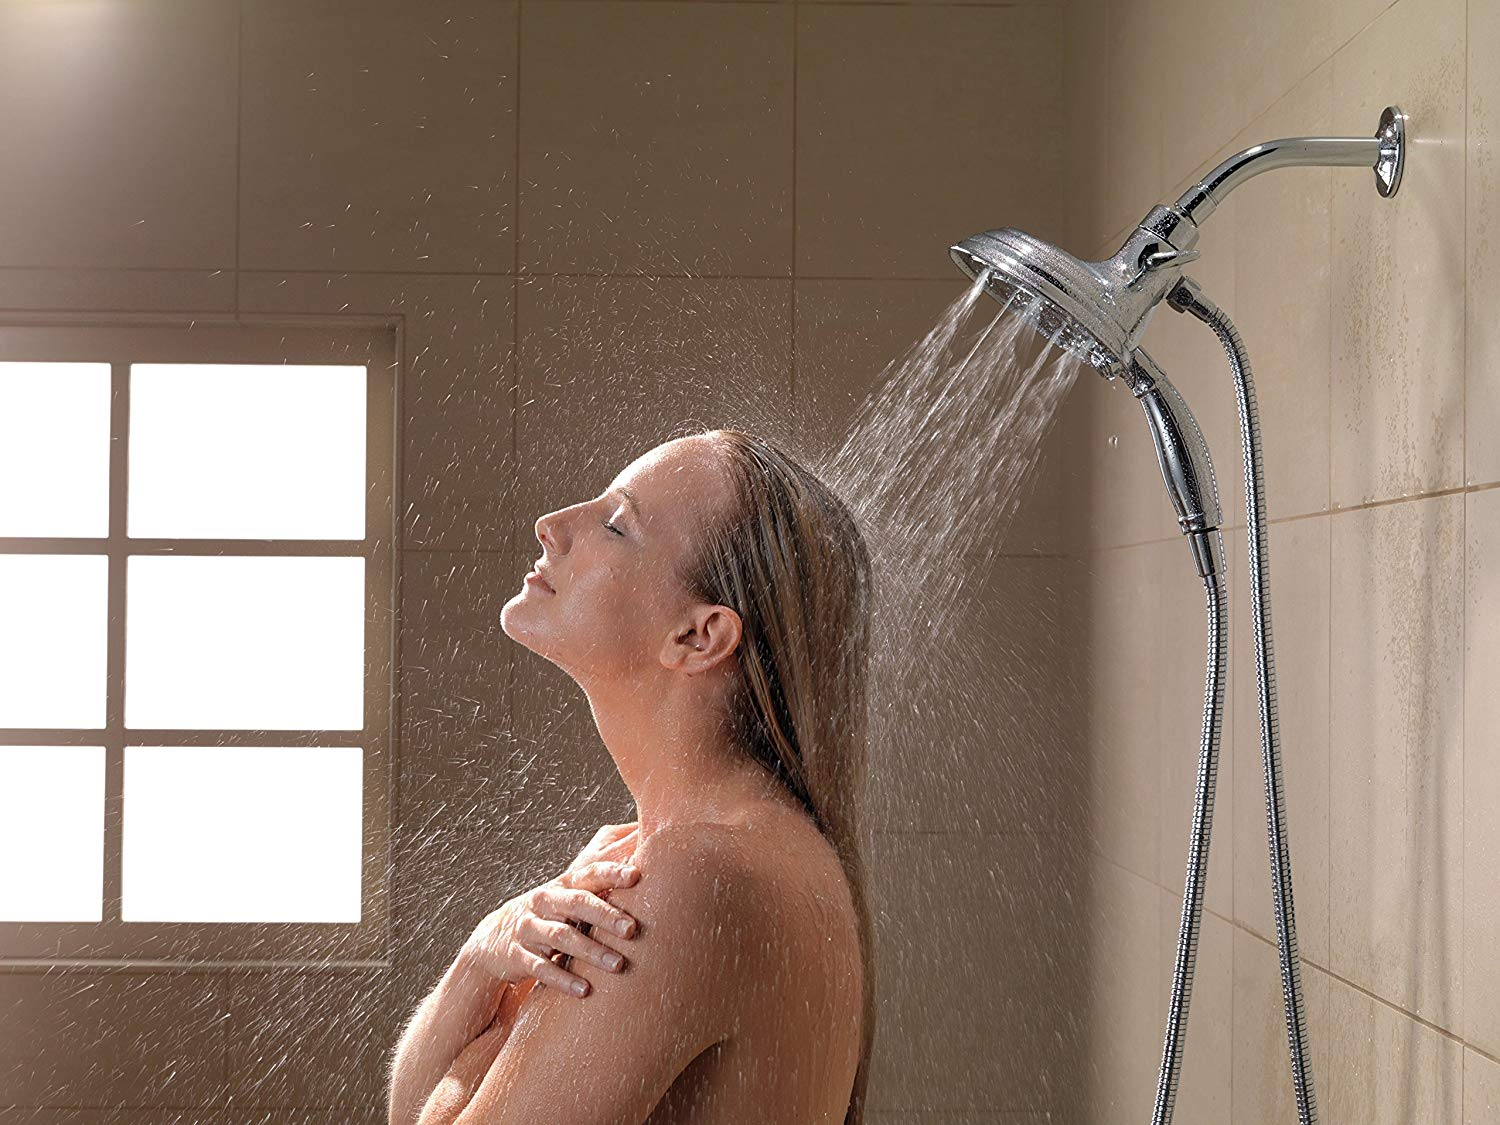 want to see more handheld shower heads?